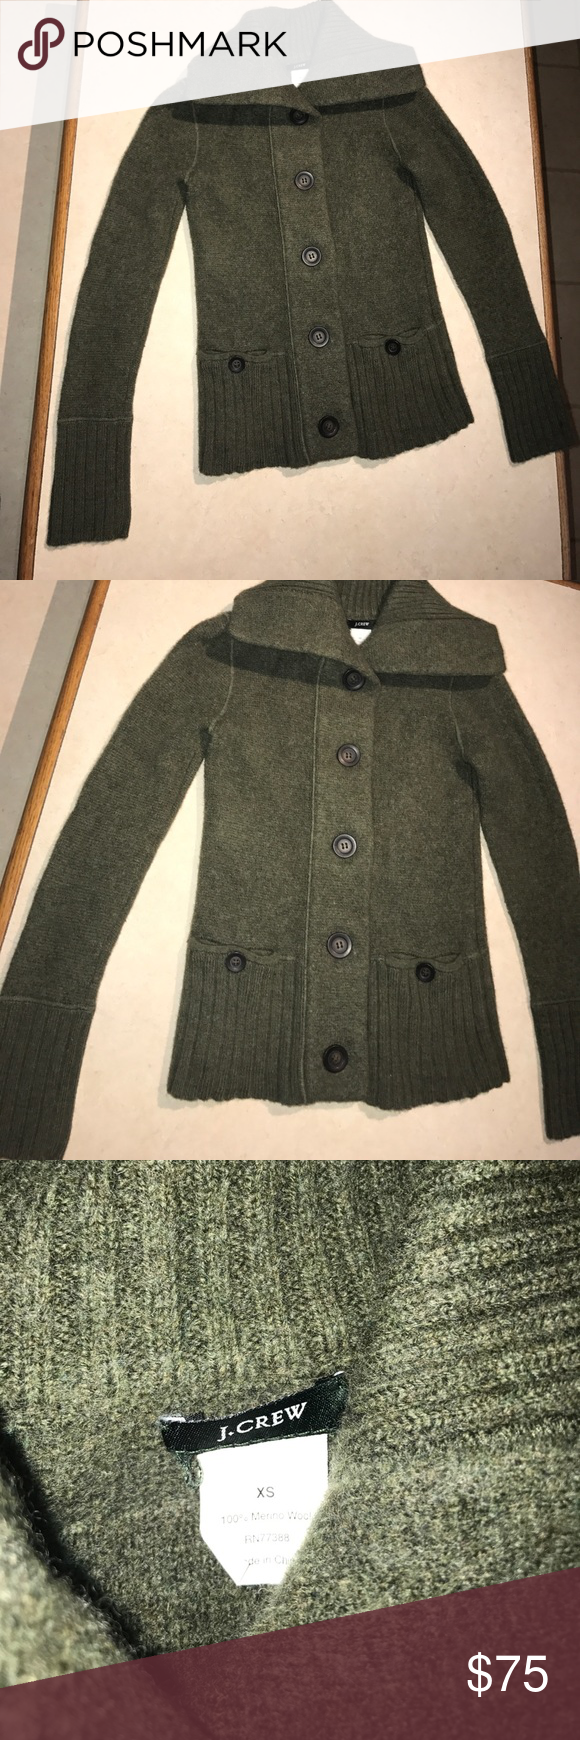 100% merino wool coat J. Crew 100% Merino wool coat size xs brand is J. Crew olive green color. Excessively warm. No flaws. J. Crew Jackets & Coats